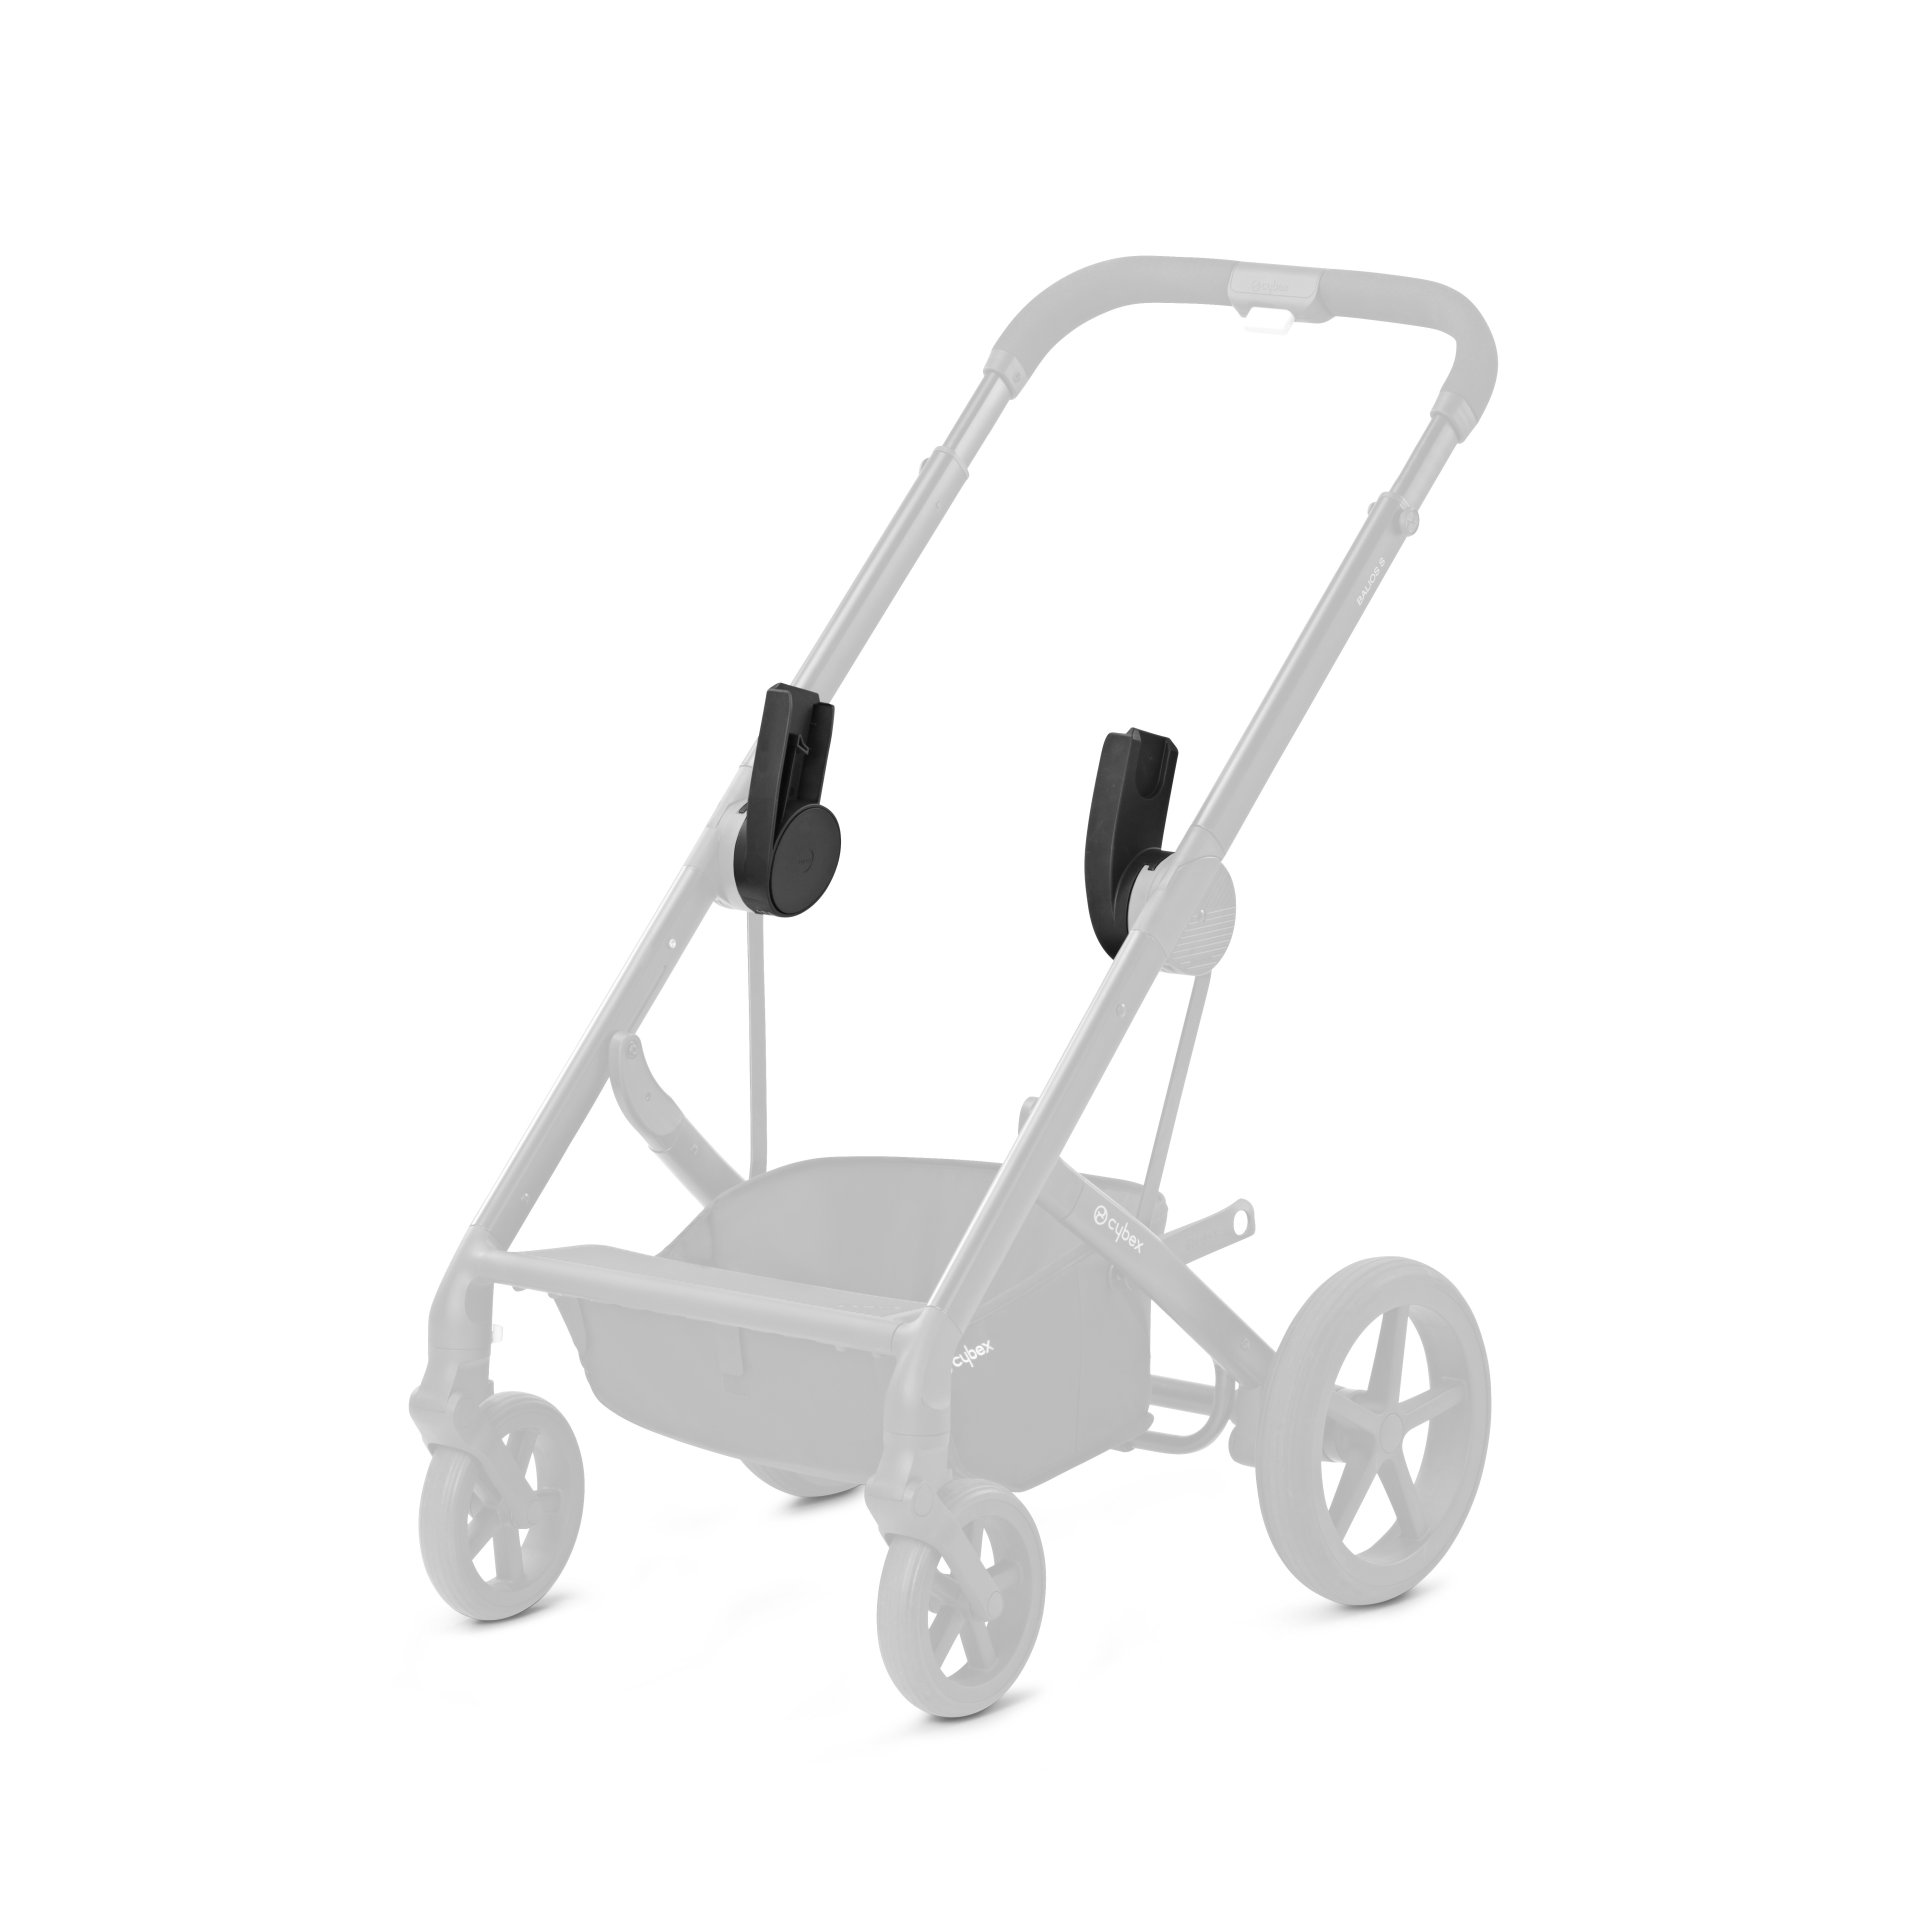 Cybex Balios S Adaptor For Infant Car Seat Buy At Kidsroom